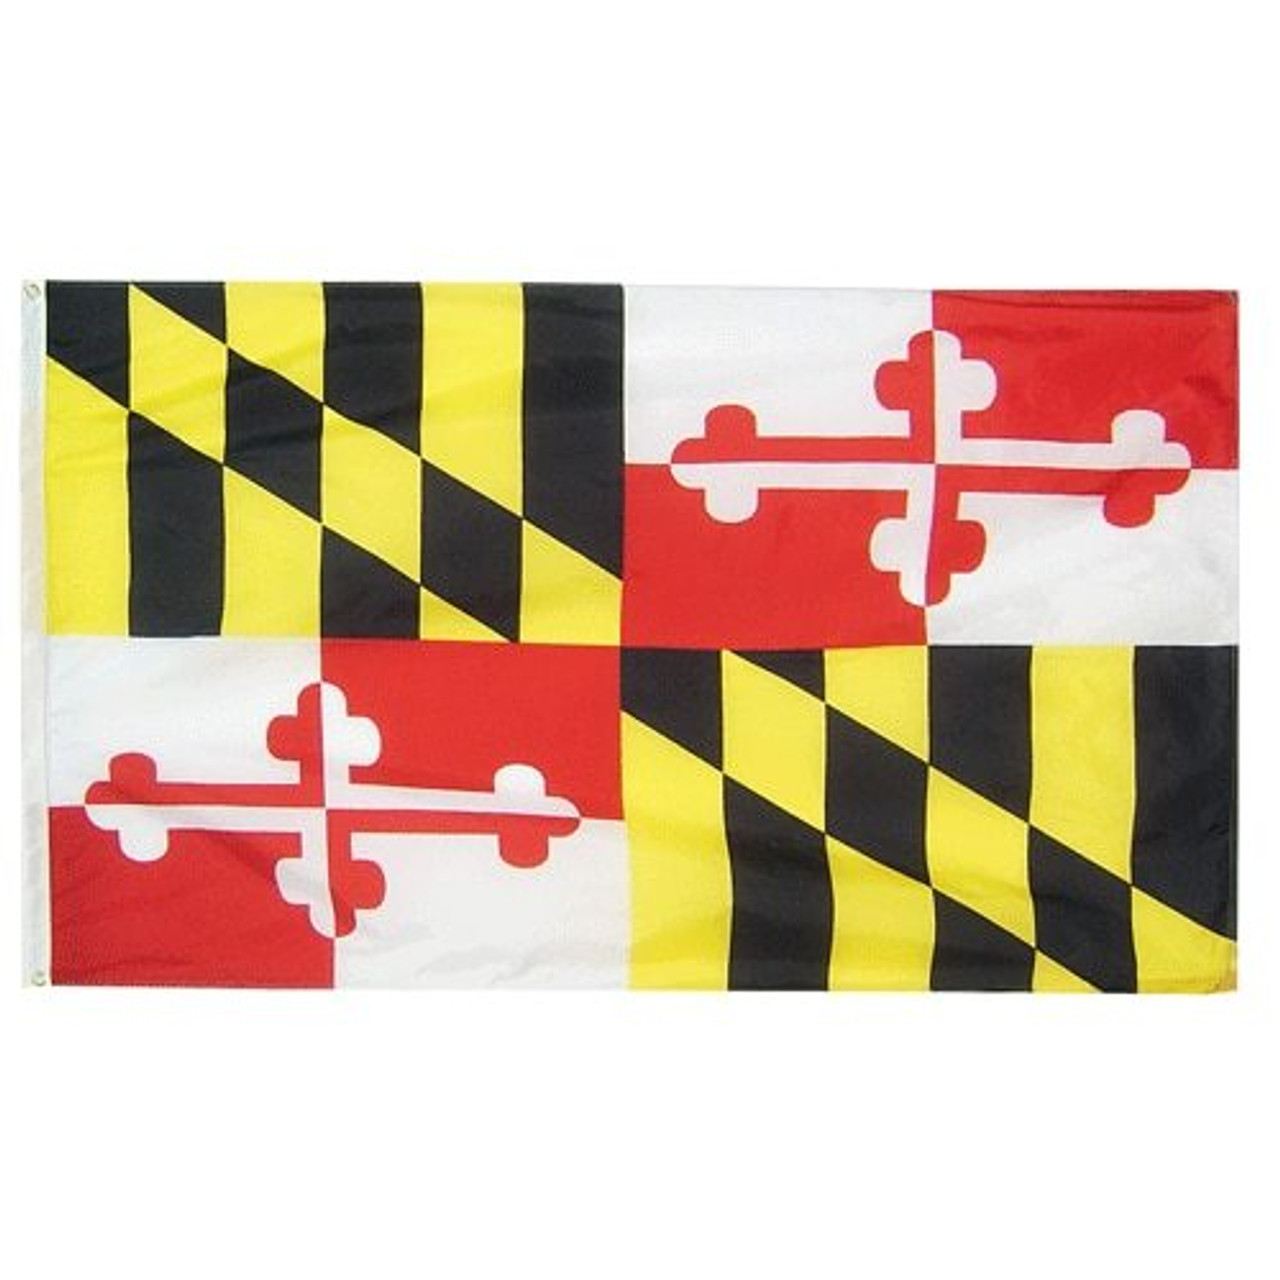 The Maryland Flag is rectangular with a white canvas header and brass grommets. The flag is split into four sections. The top-left and lower-right sections are divided into six vertical gold and black stripes with a right diagonal band counter-changing the colors. Within the diagonal band, the colors are reversed. The top-right and lower-left sections are quartered white and red. A white background is displayed in the top-left and lower-right quadrant, and red in the upper-right and lower-left quadrant. They included a cross bottony counterchanged so the opposing color or either red or white colors in the bottony. The bottony is red in the upper-left and lower-right quarters, and white in the upper-right and lower-left corners.